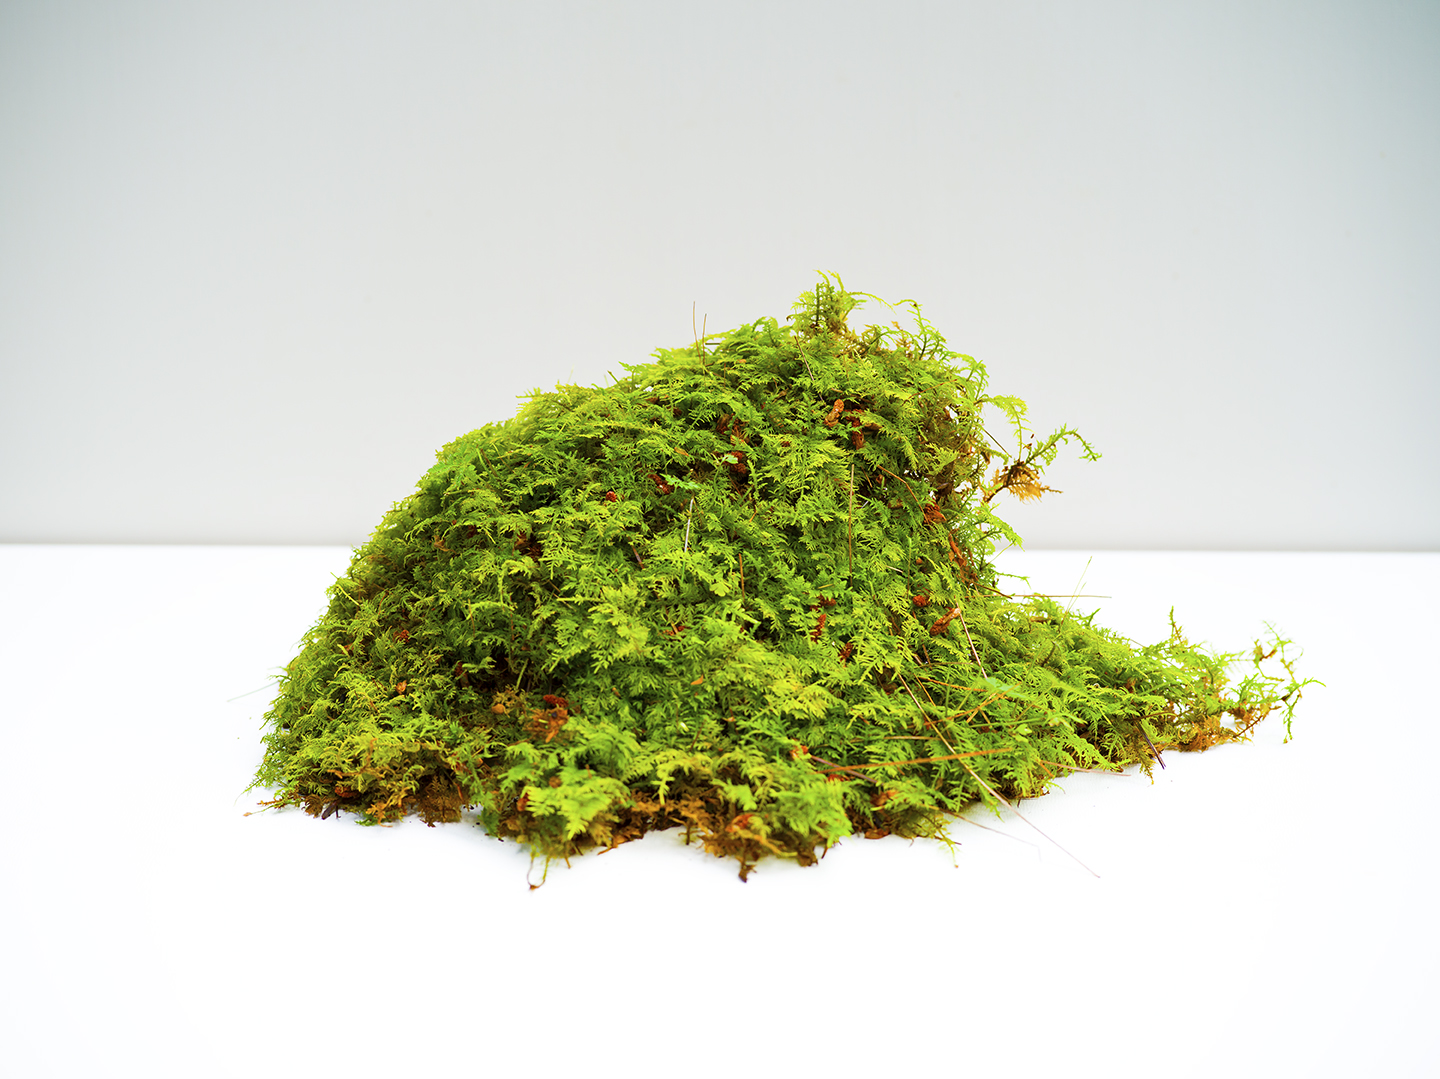 Moss pushed into the forest by heavy rain.